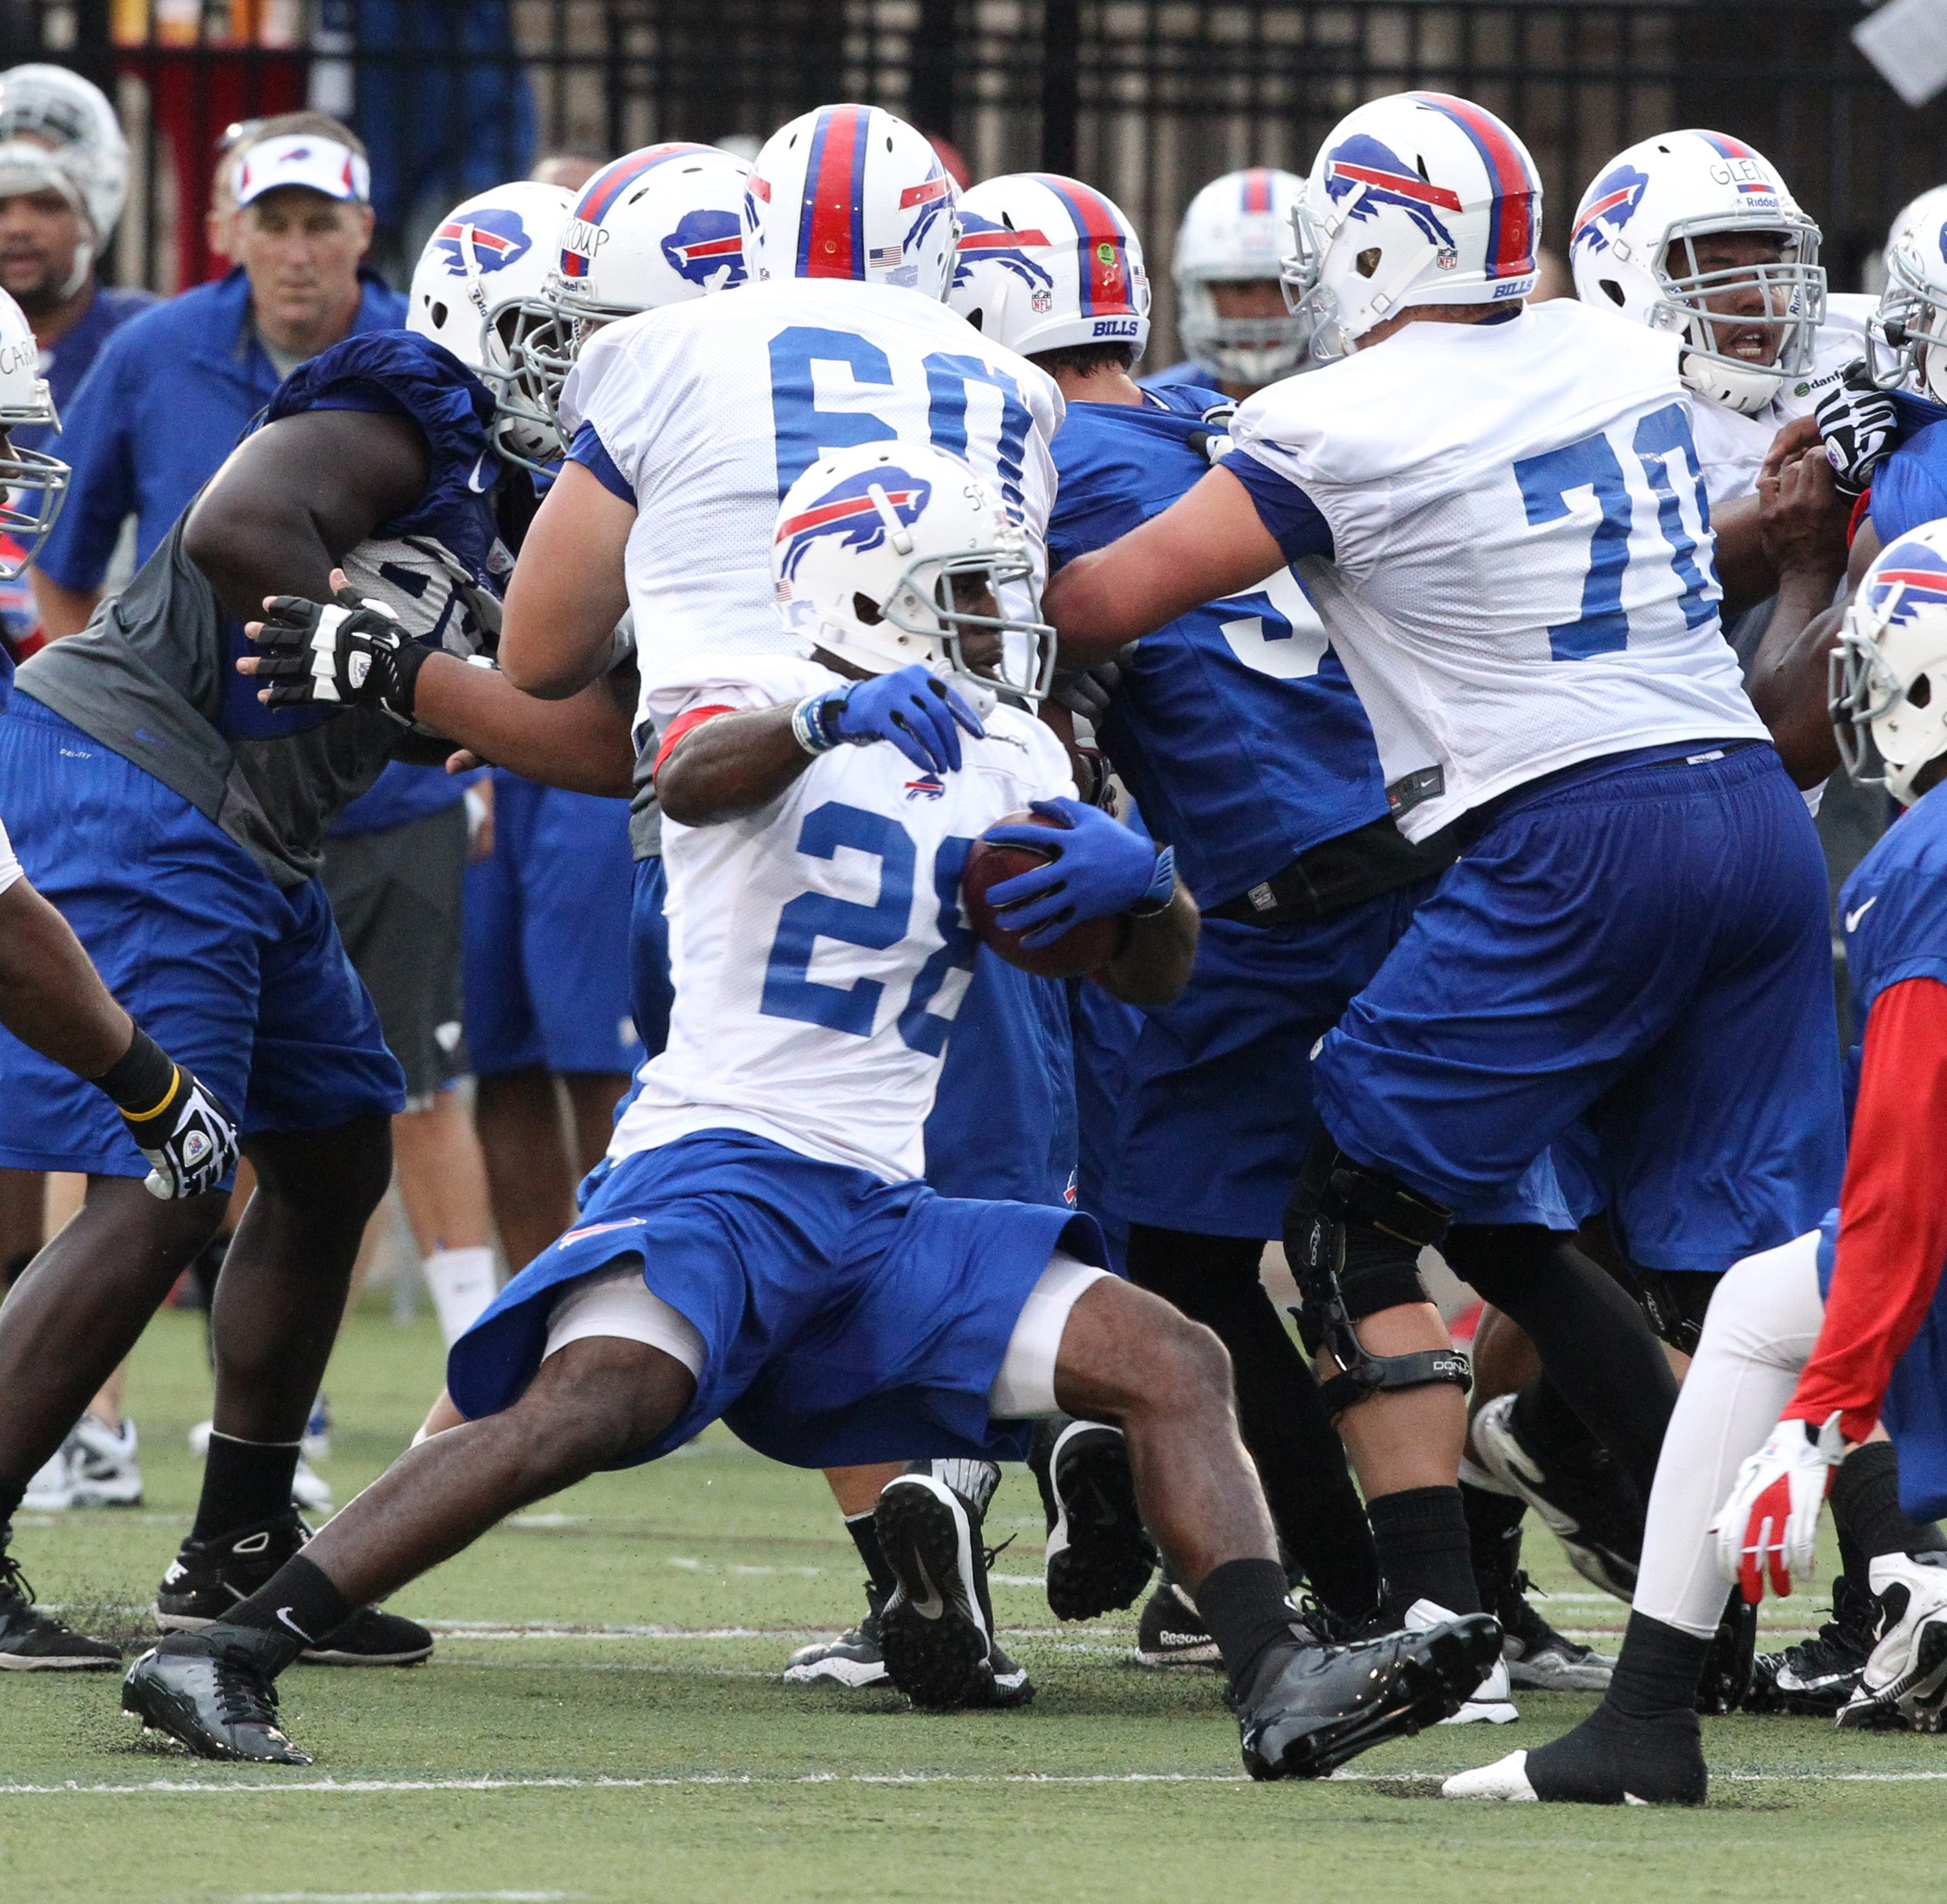 Bills running back C.J. Spiller makes a cut while running a pattern in a drill Sunday night at St. John Fisher College.